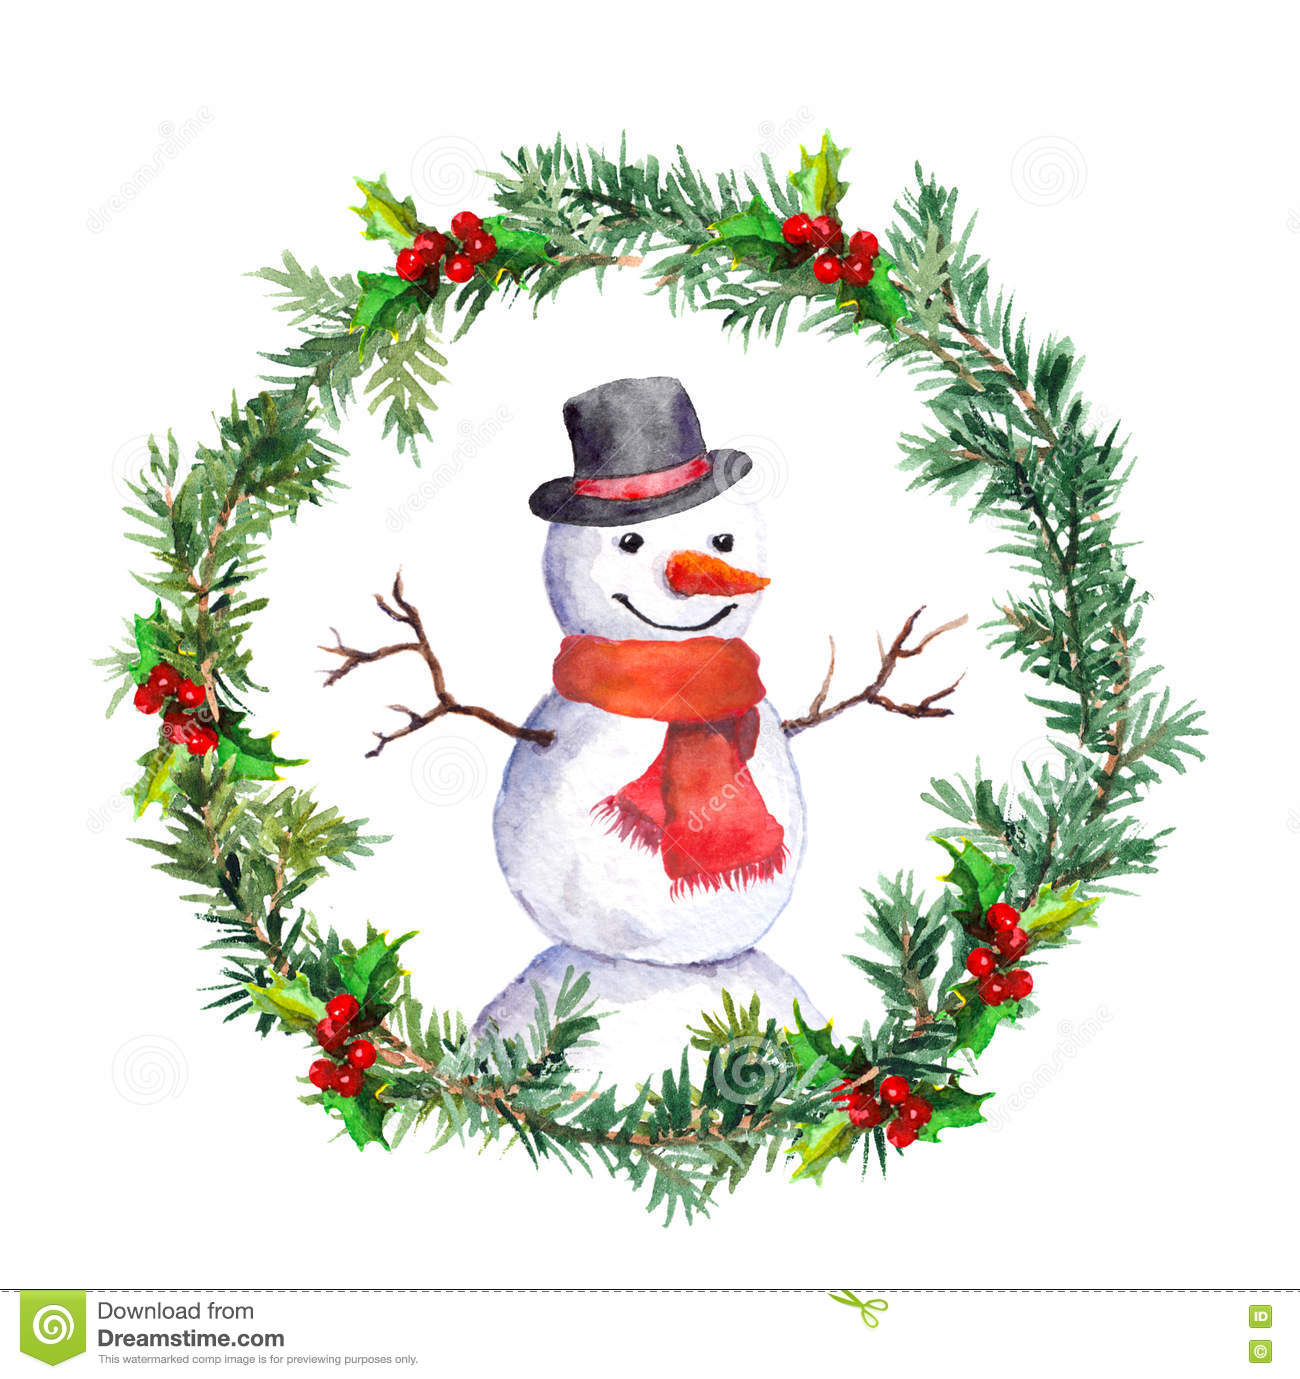 Snowman In Christmas Wreath With Fir Tree Branches Watercolor Stock Illustration